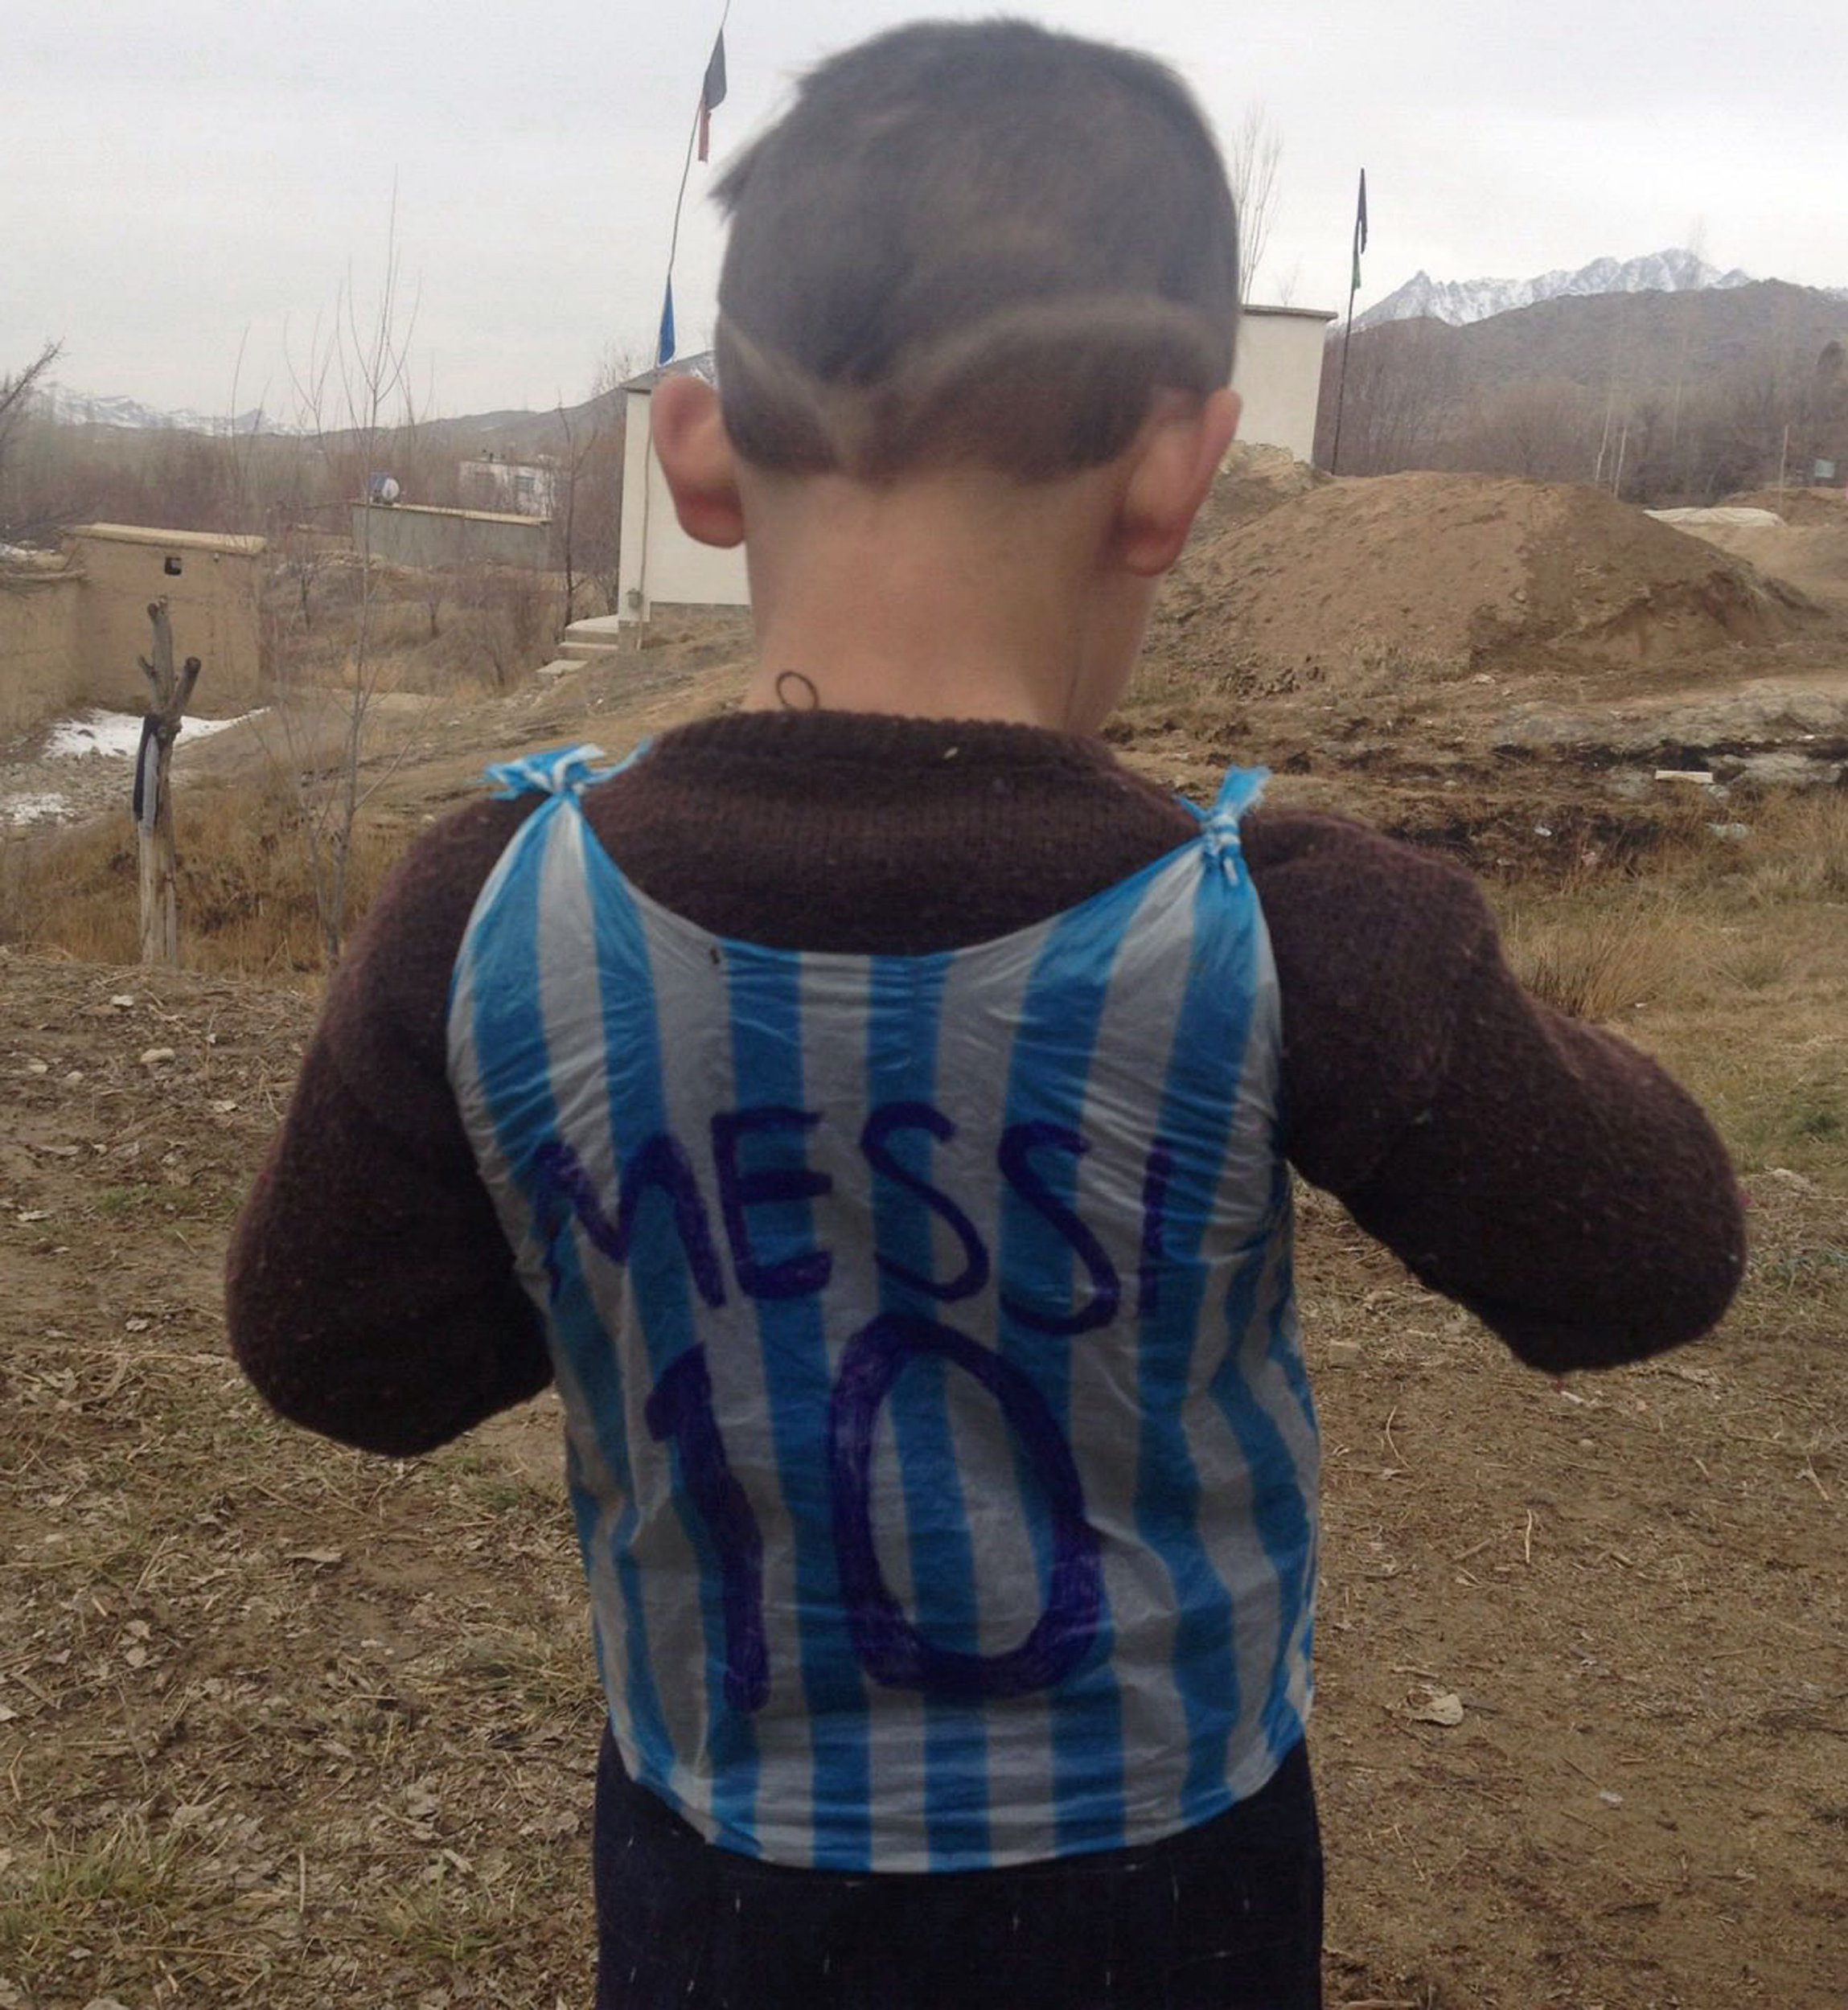 This photograph taken on January 24, 2016 and provided by the family of Afghan boy and Lionel Messi fan Murtaza Ahmadi, 5, shows him wearing a plastic bag jersey in Jaghori district of Ghazni province. A five-year-old Afghan boy has become an internet star after pictures went viral of him wearing an Argentina football shirt made out of a plastic bag, complete with his hero Lionel Messi's name. AFP PHOTO / AFP / STR (Photo credit should read STR/AFP/Getty Images)